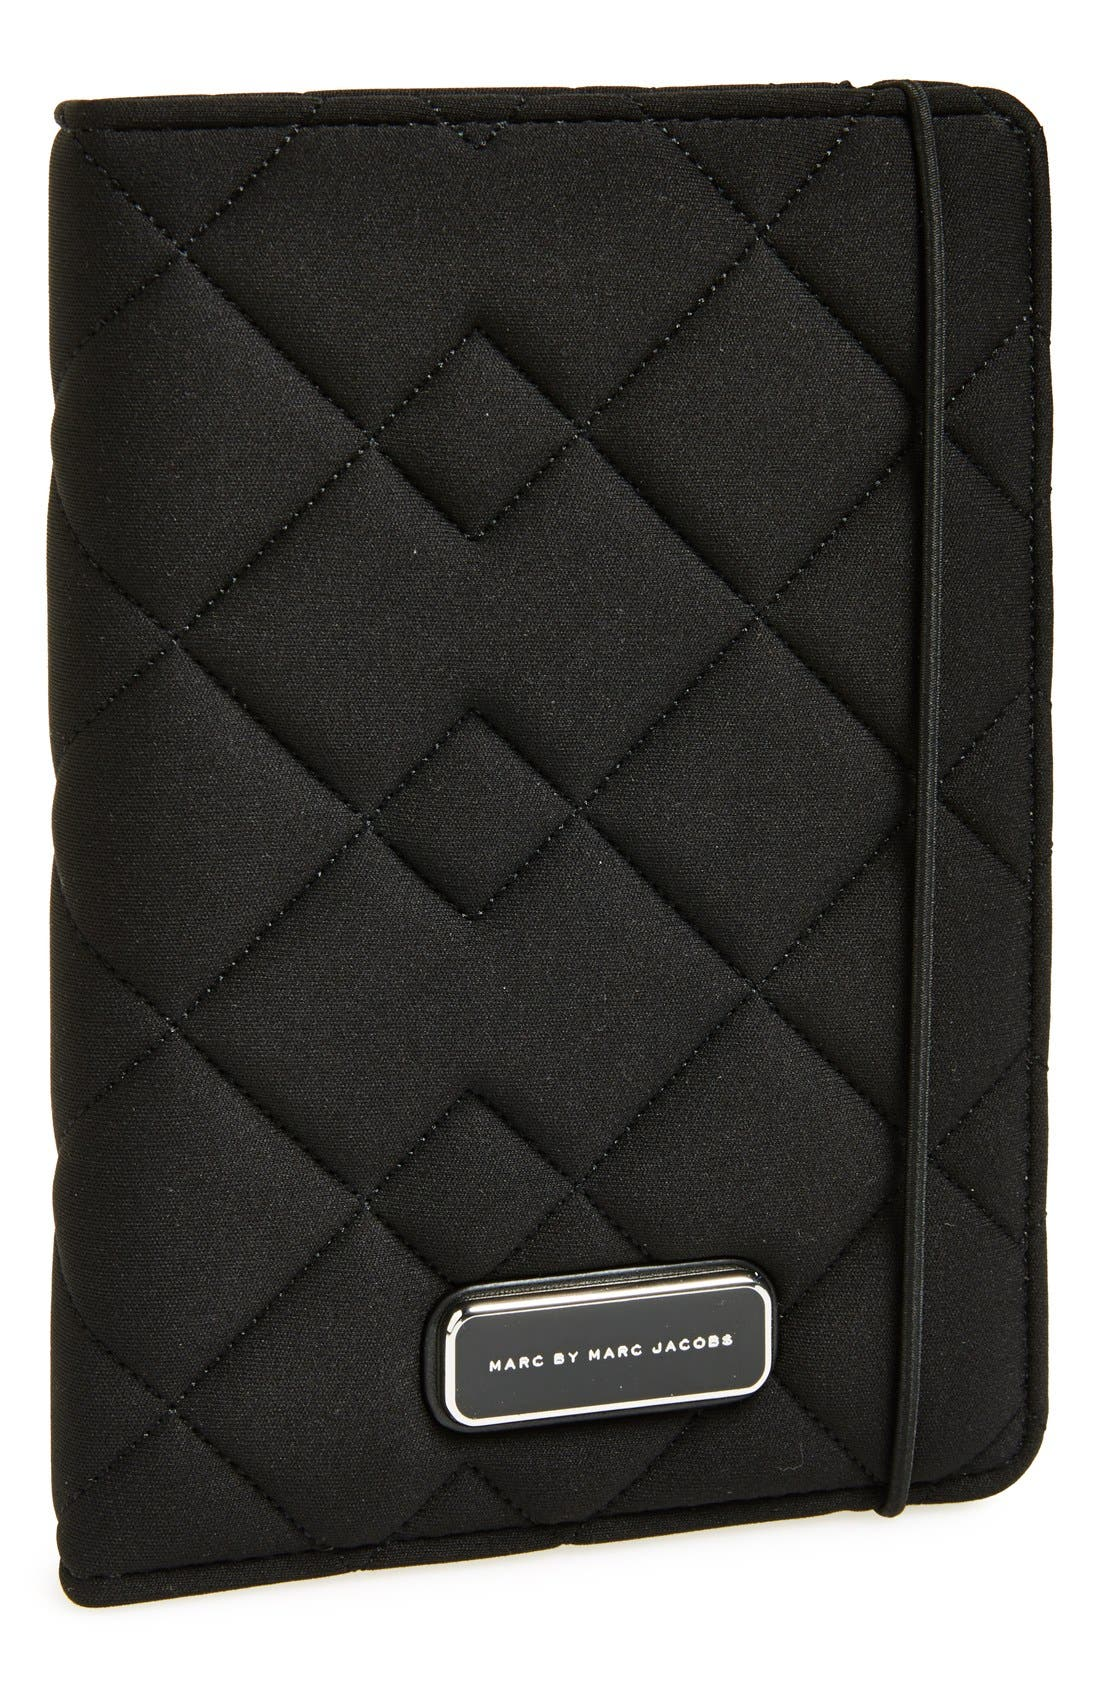 Main Image - MARC BY MARC JACOBS 'Crosby' iPad mini Tablet Case